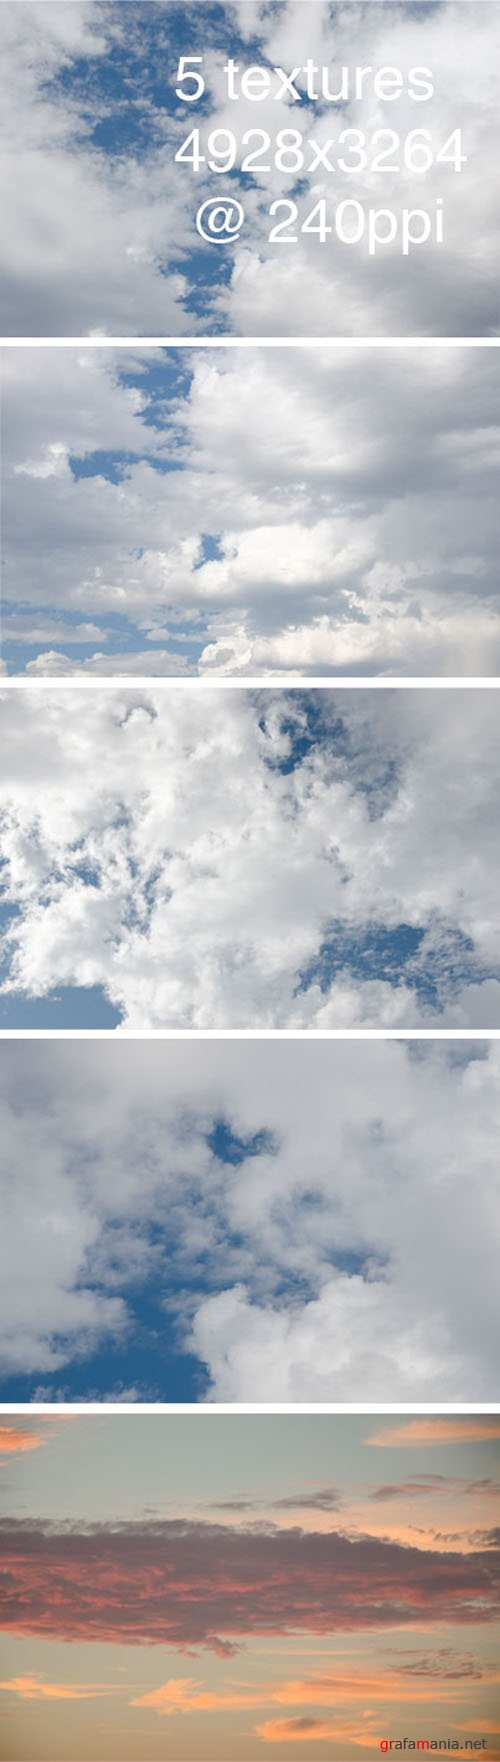 Textures - Clouds Pack 1